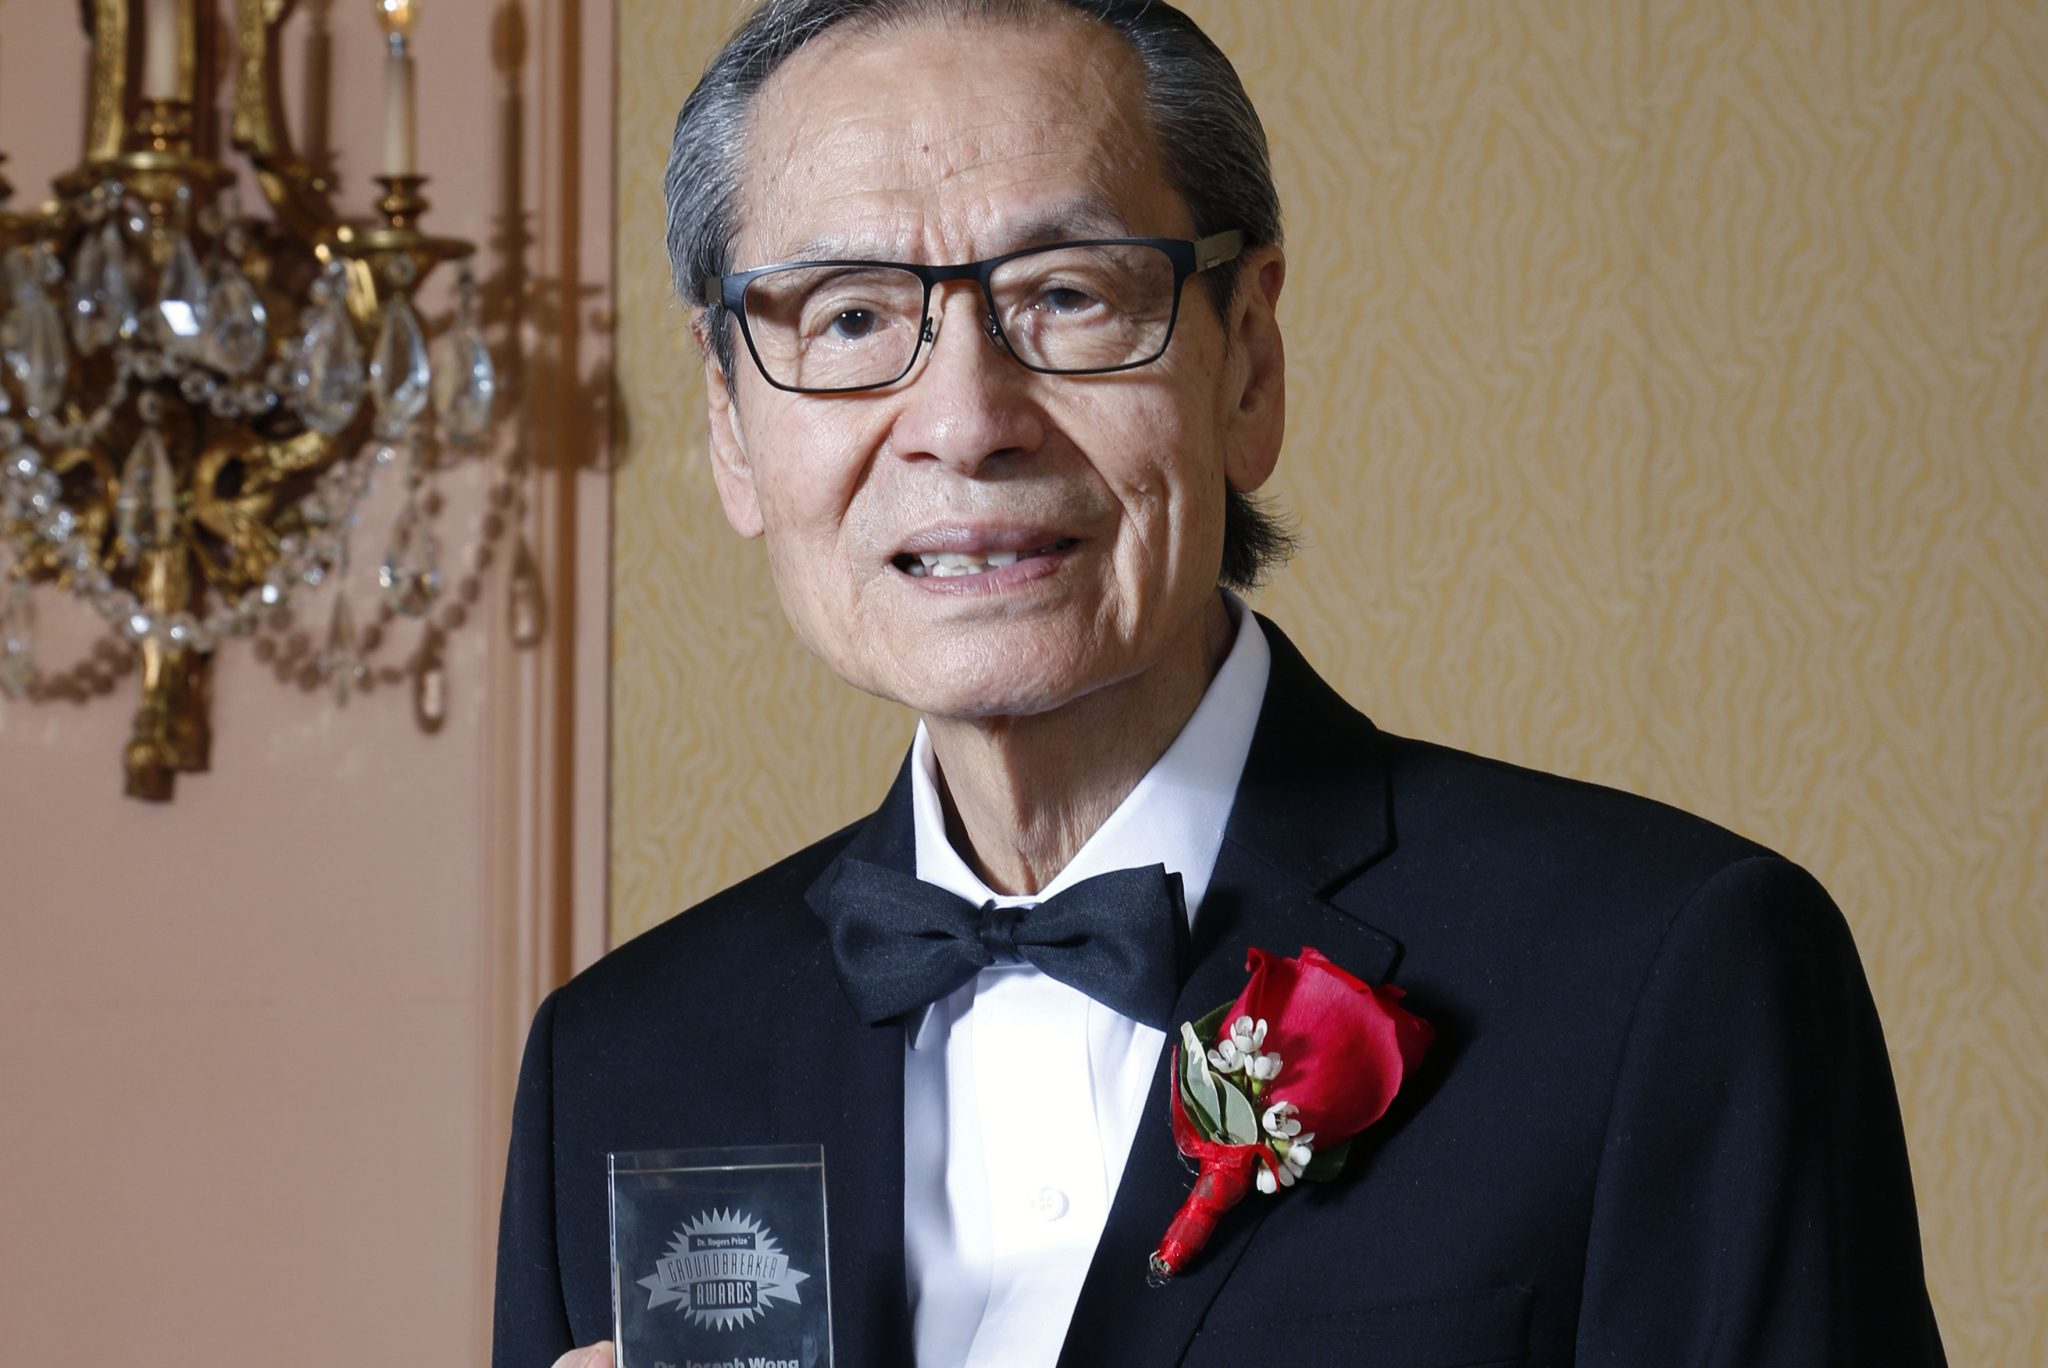 Dr. Joseph Wong - Dr. Rogers Prize Groundbreaker Awards Winner